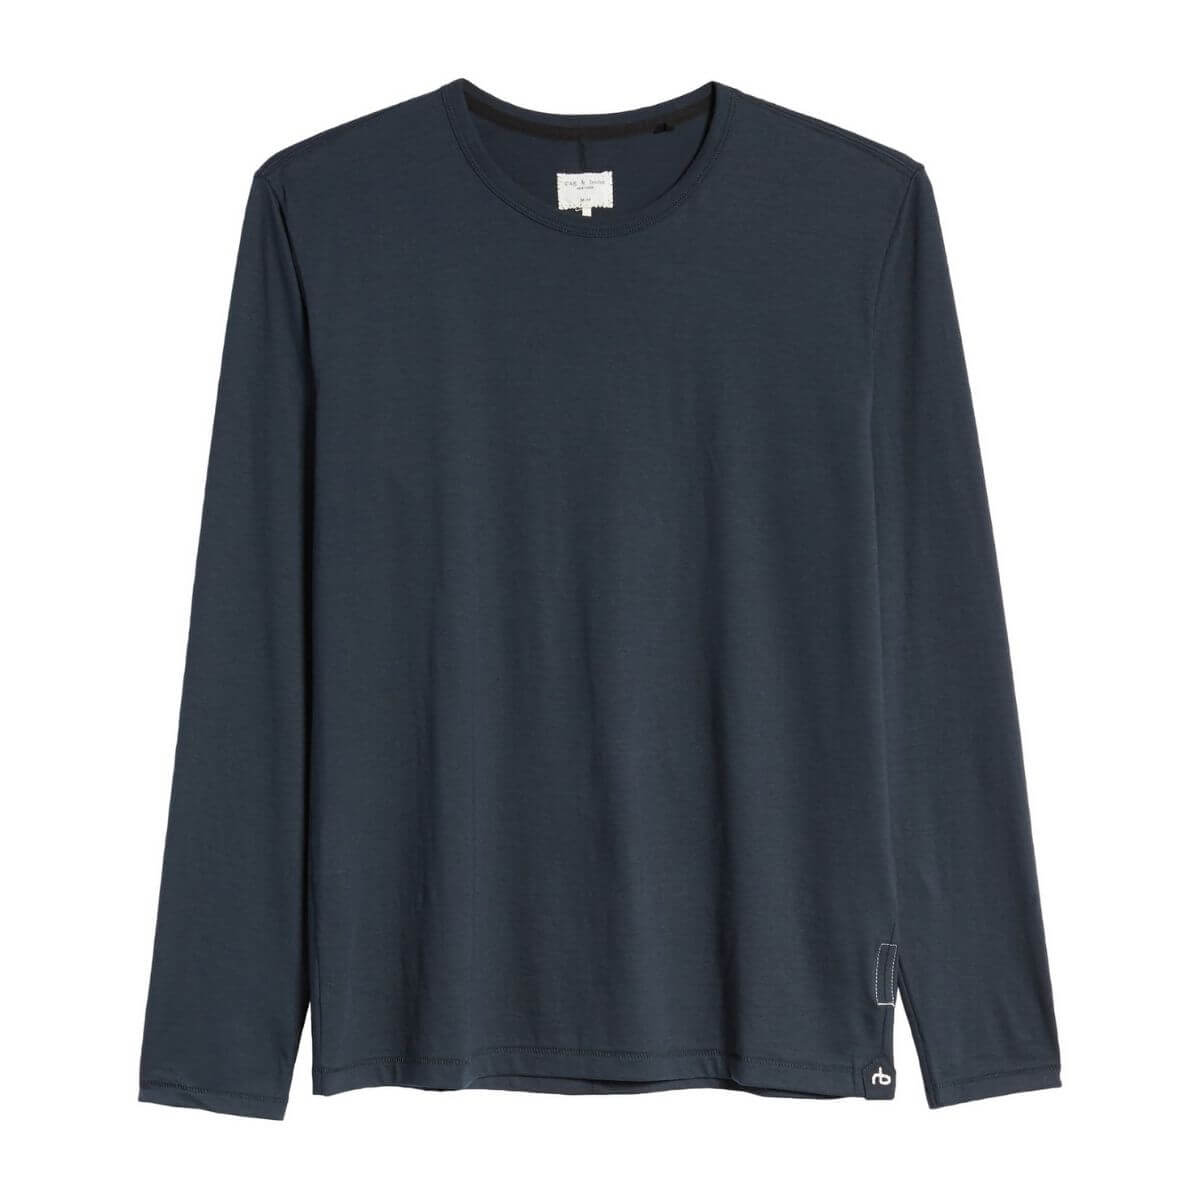 Navy blue long-sleeve t-shirt.